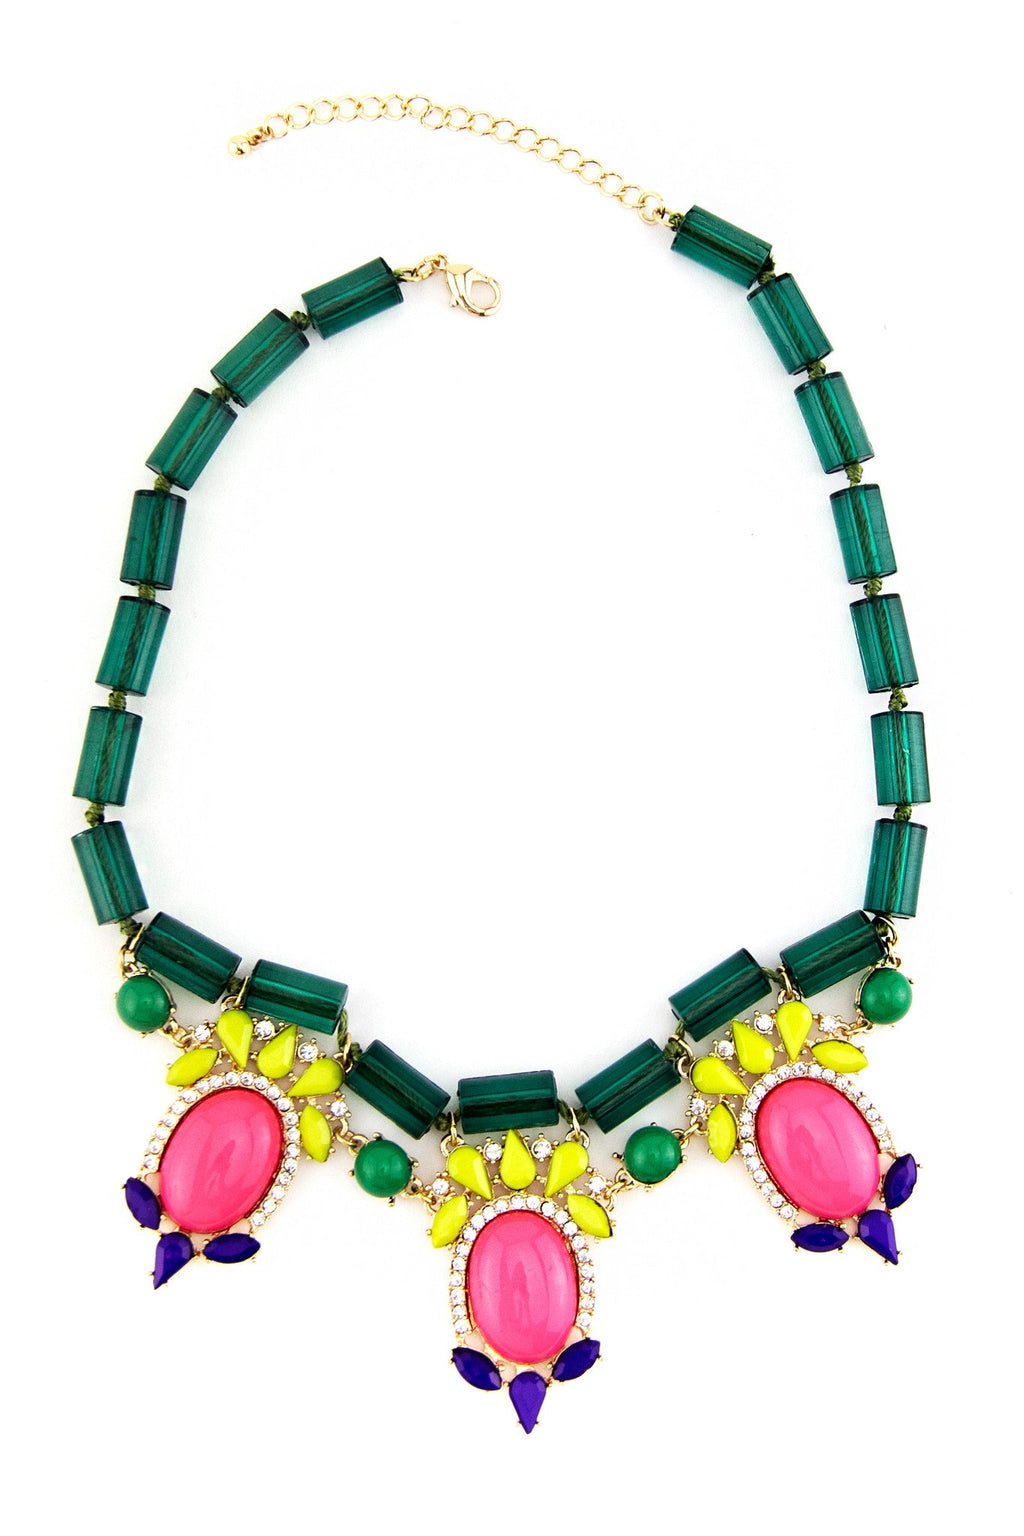 COLORFUL GEM STONES NECKLACE - Haute & Rebellious